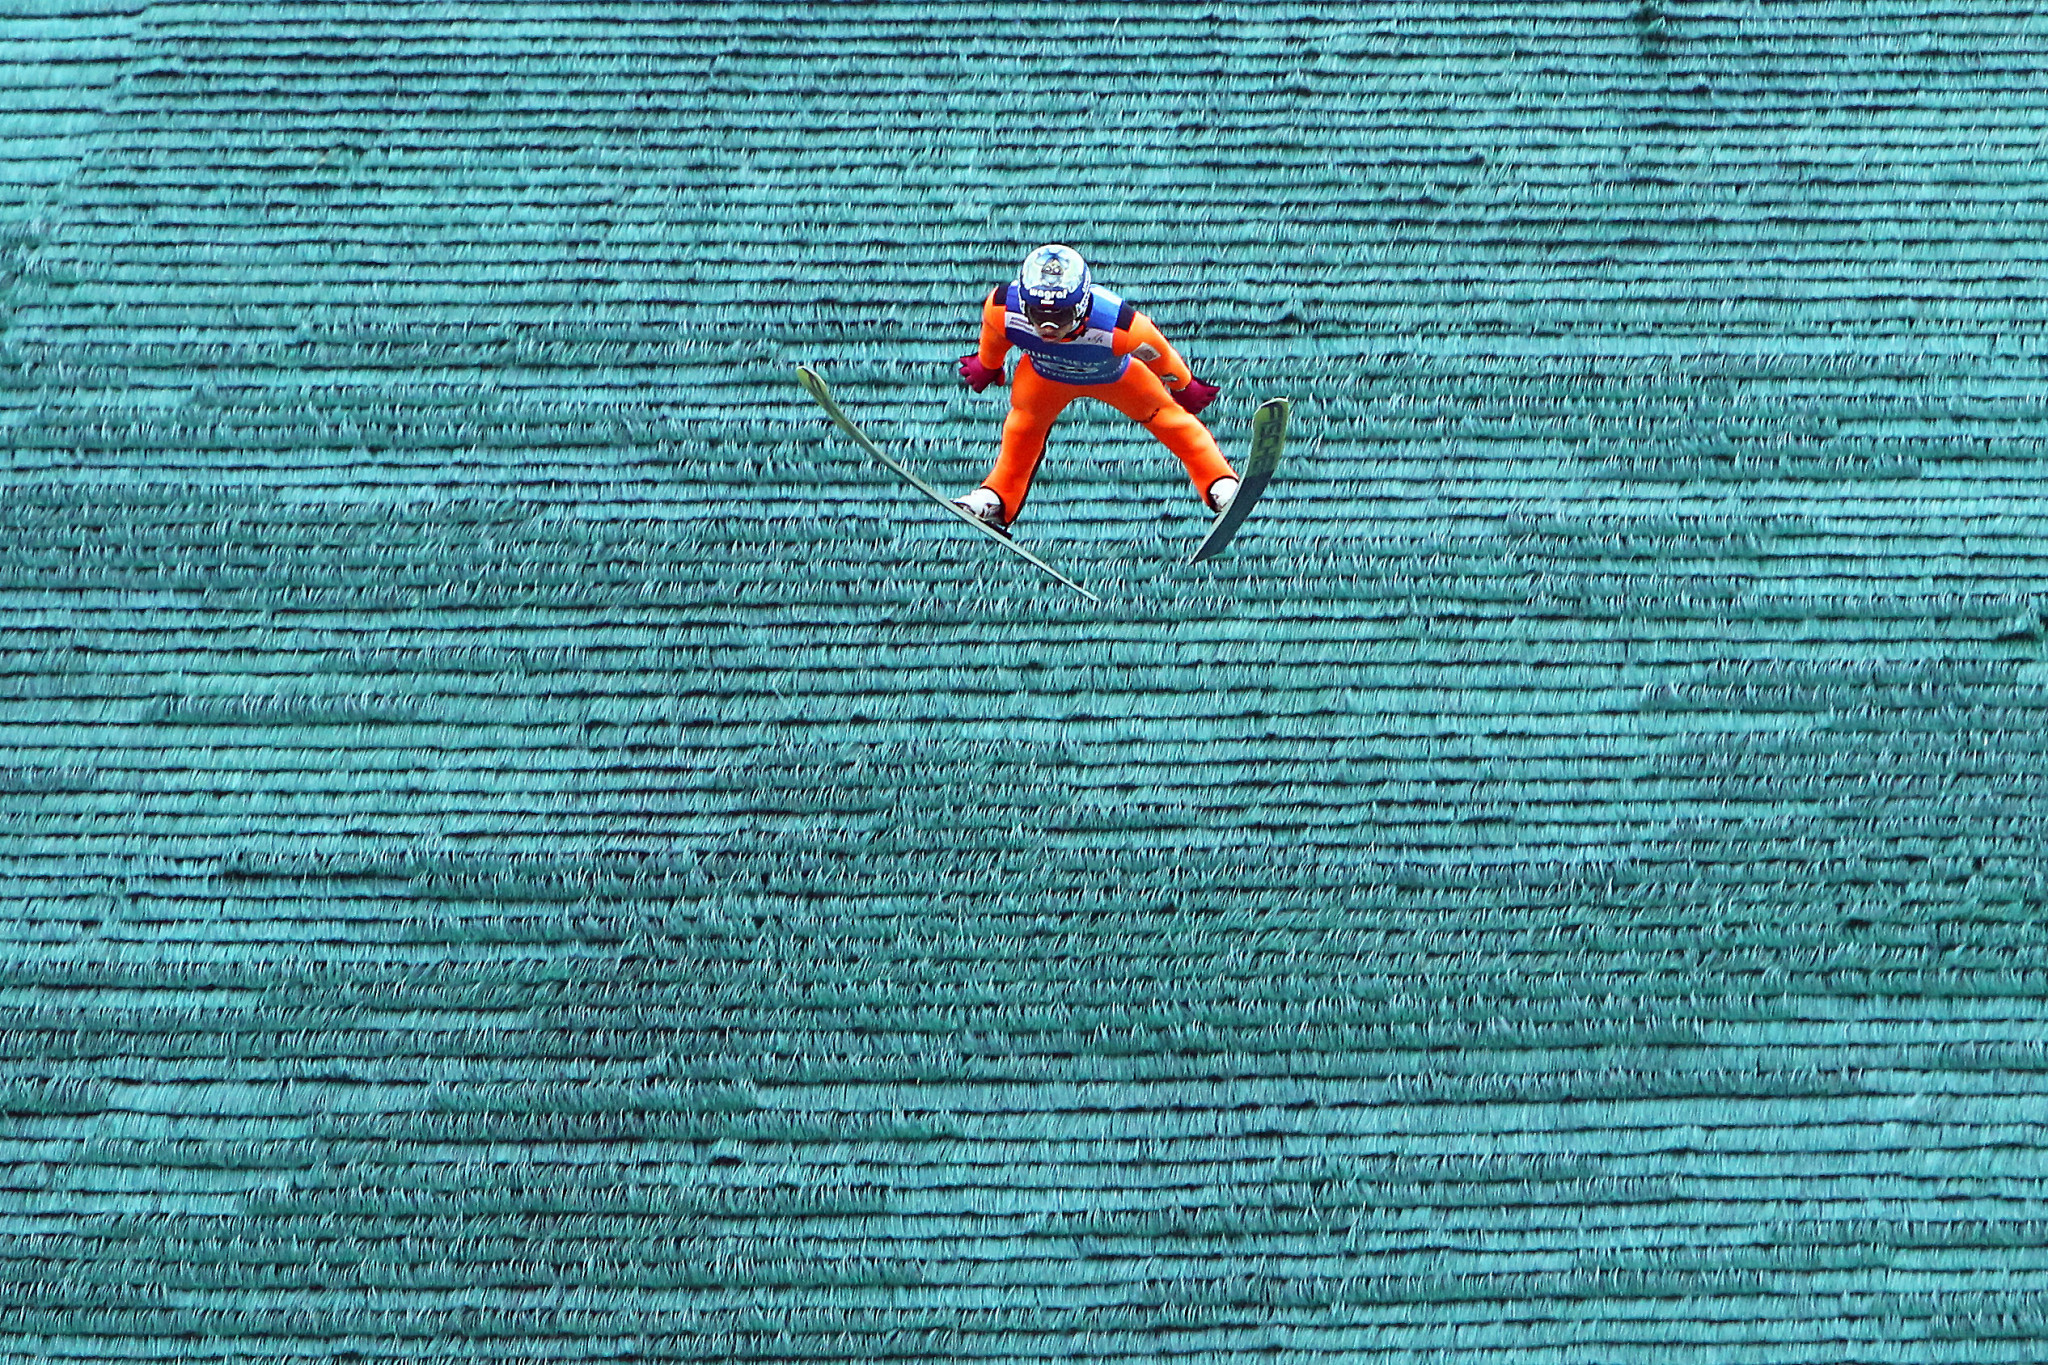 The summer ski jumping season will begin this weekend, organisers have said ©Getty Images